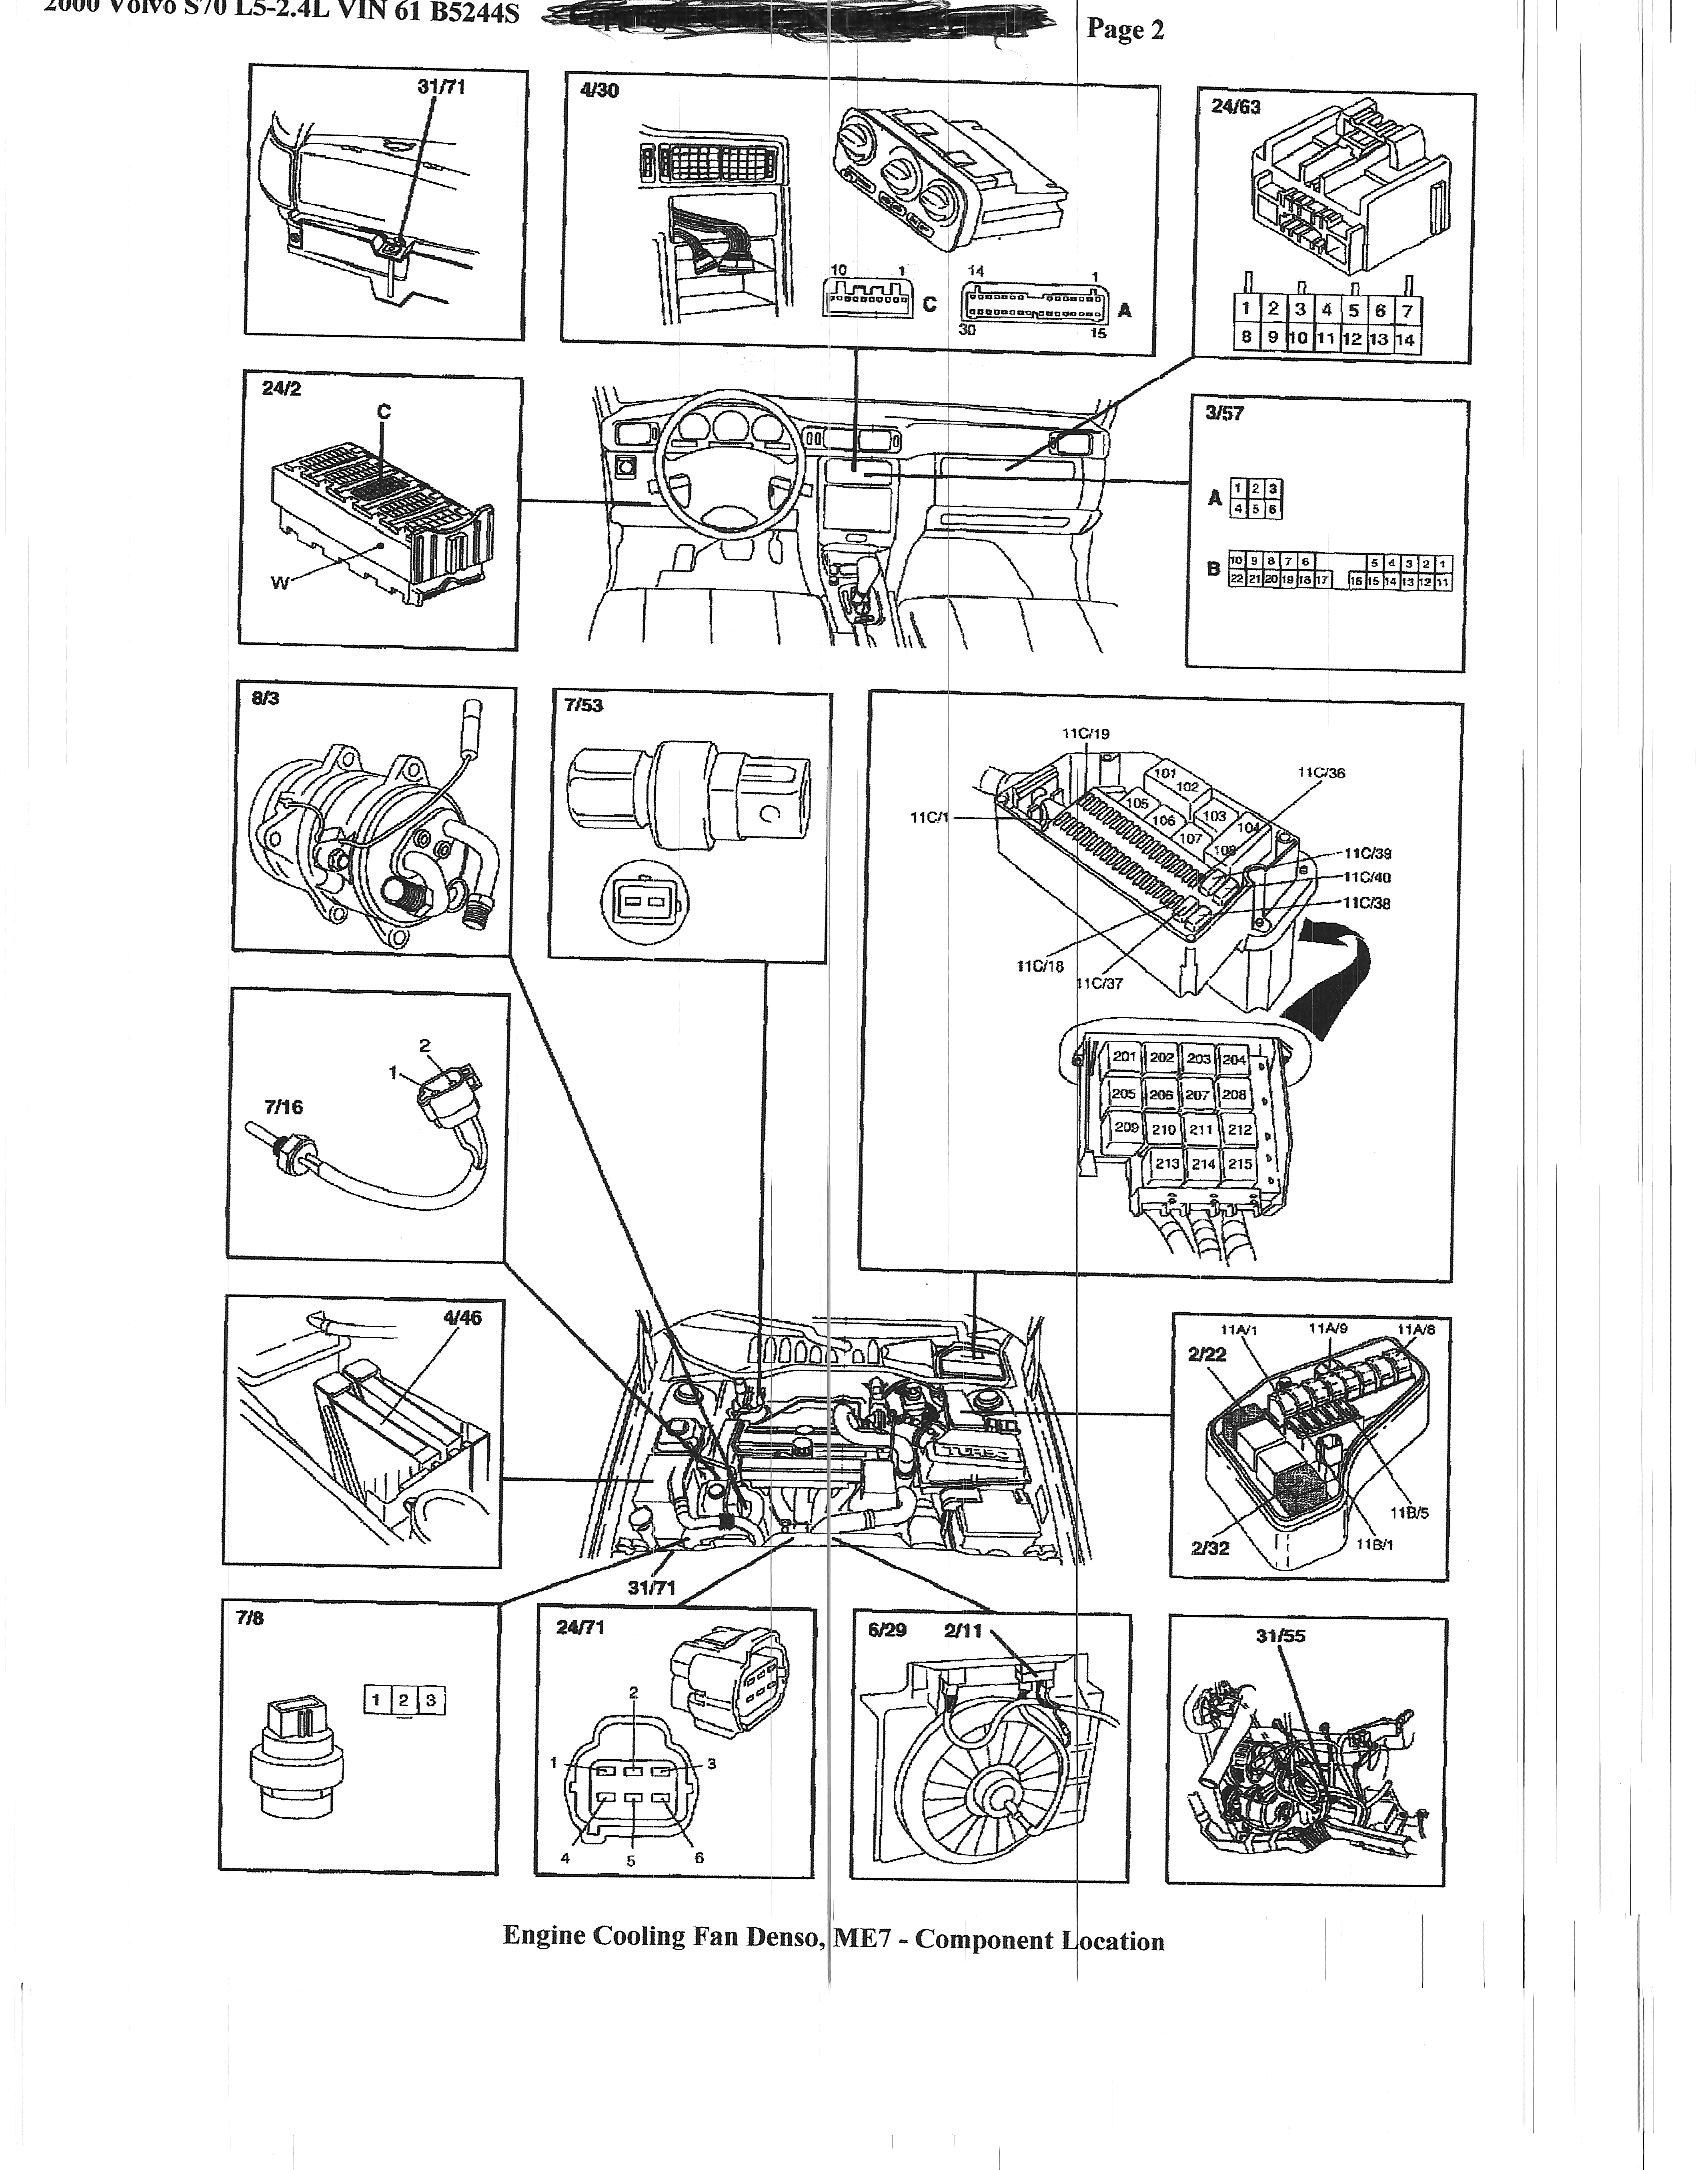 1998 gmc sierra electrical diagram